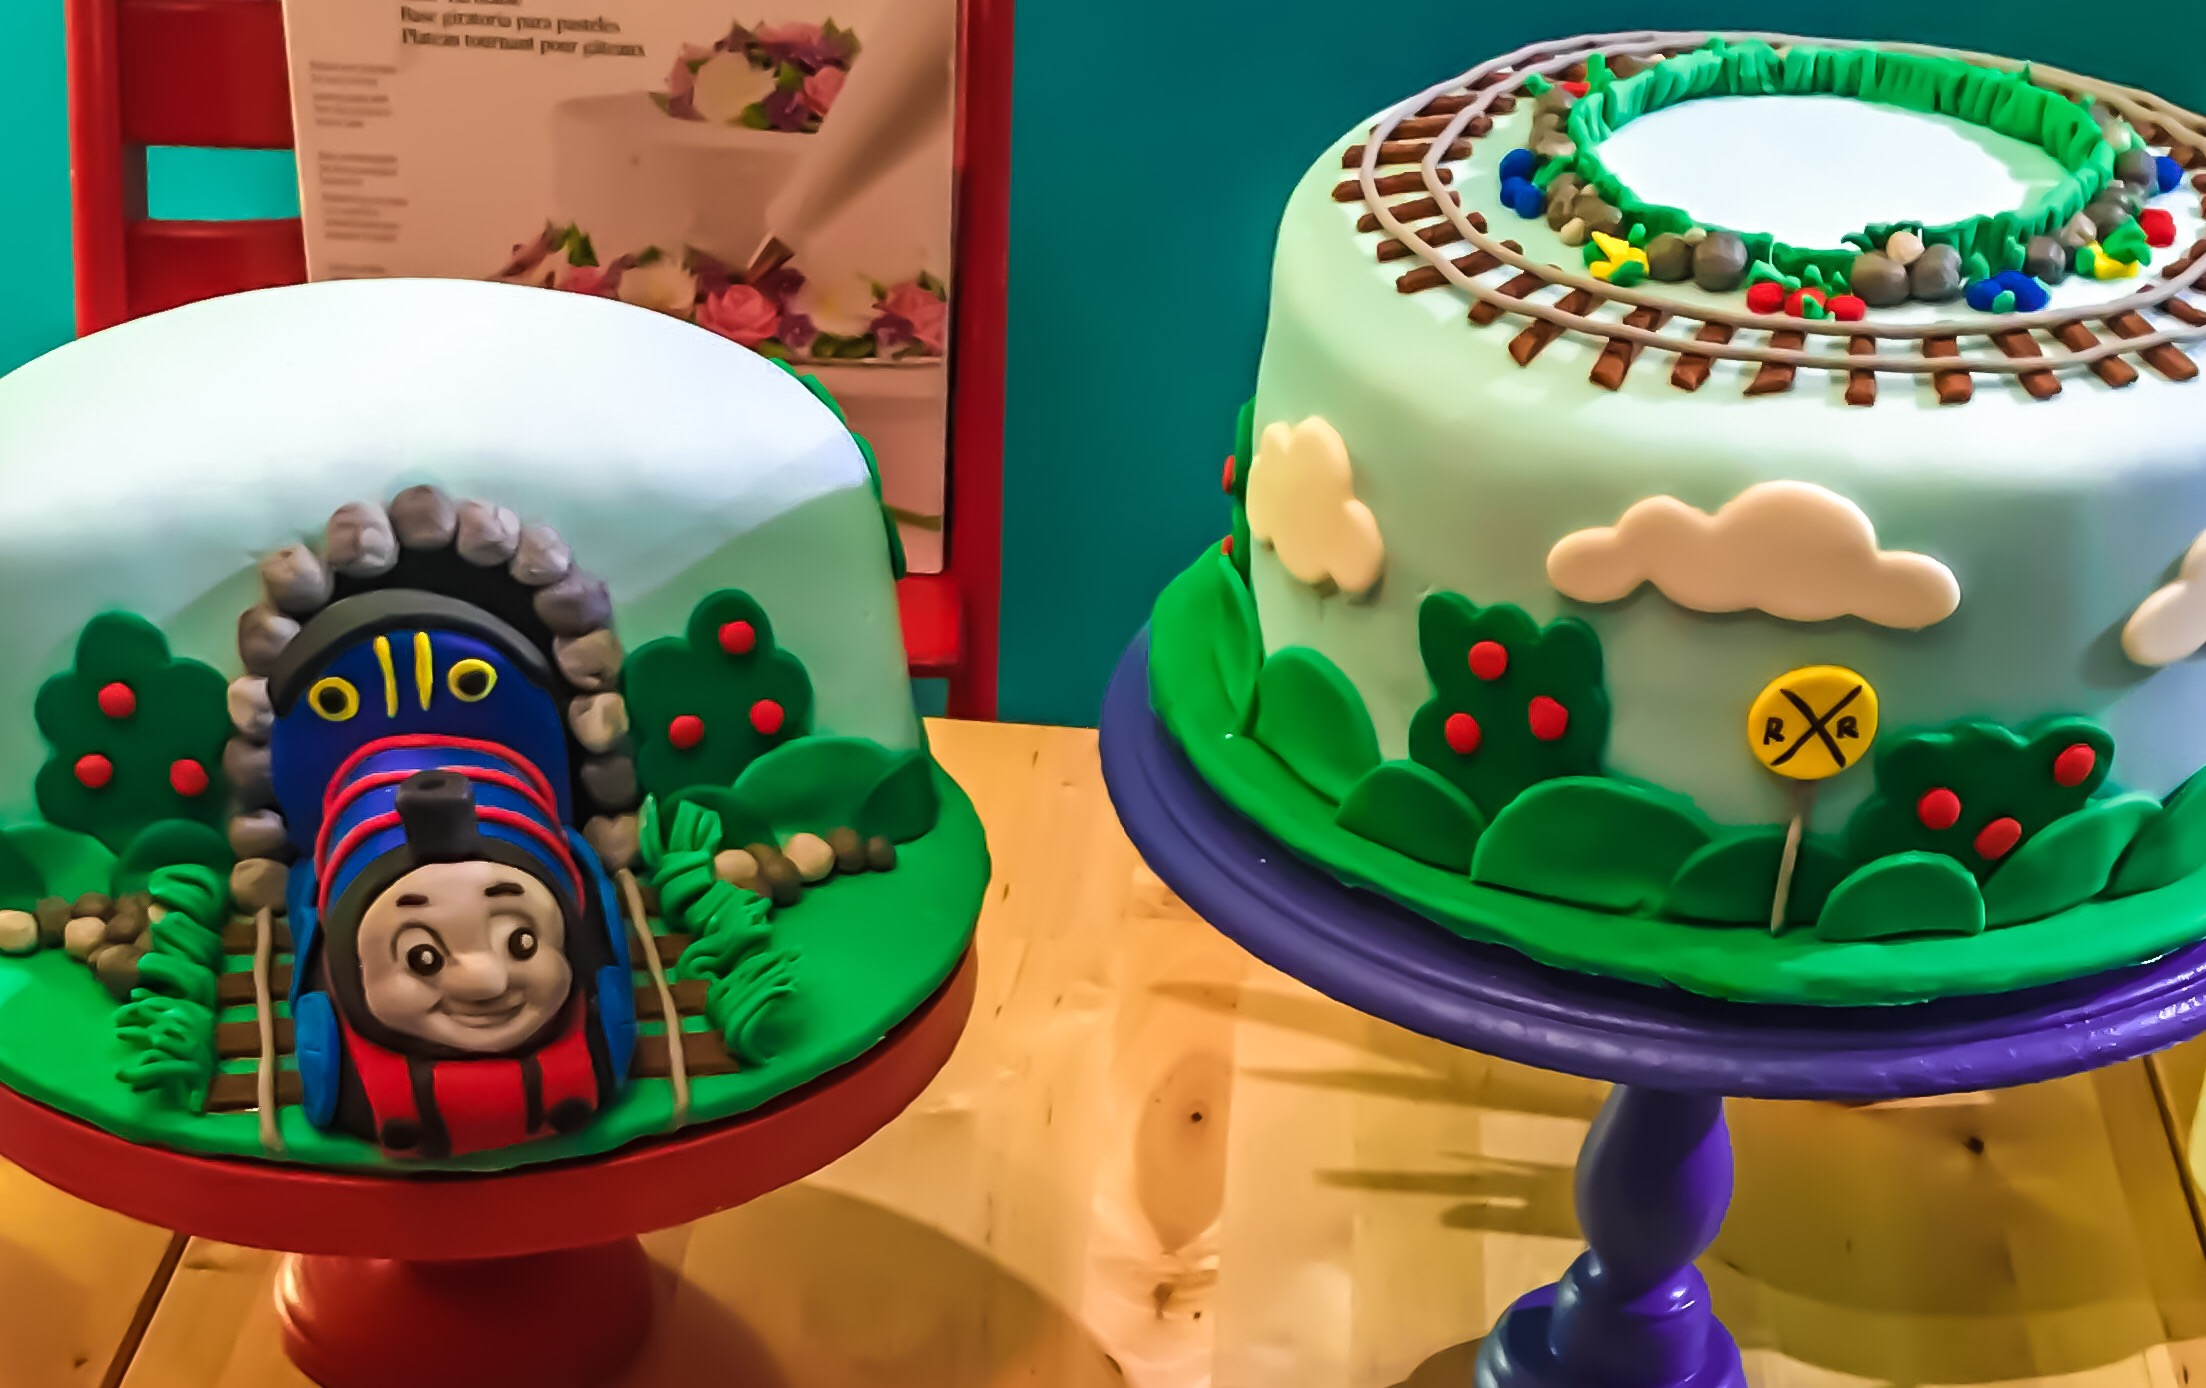 Thomas the Train cakes